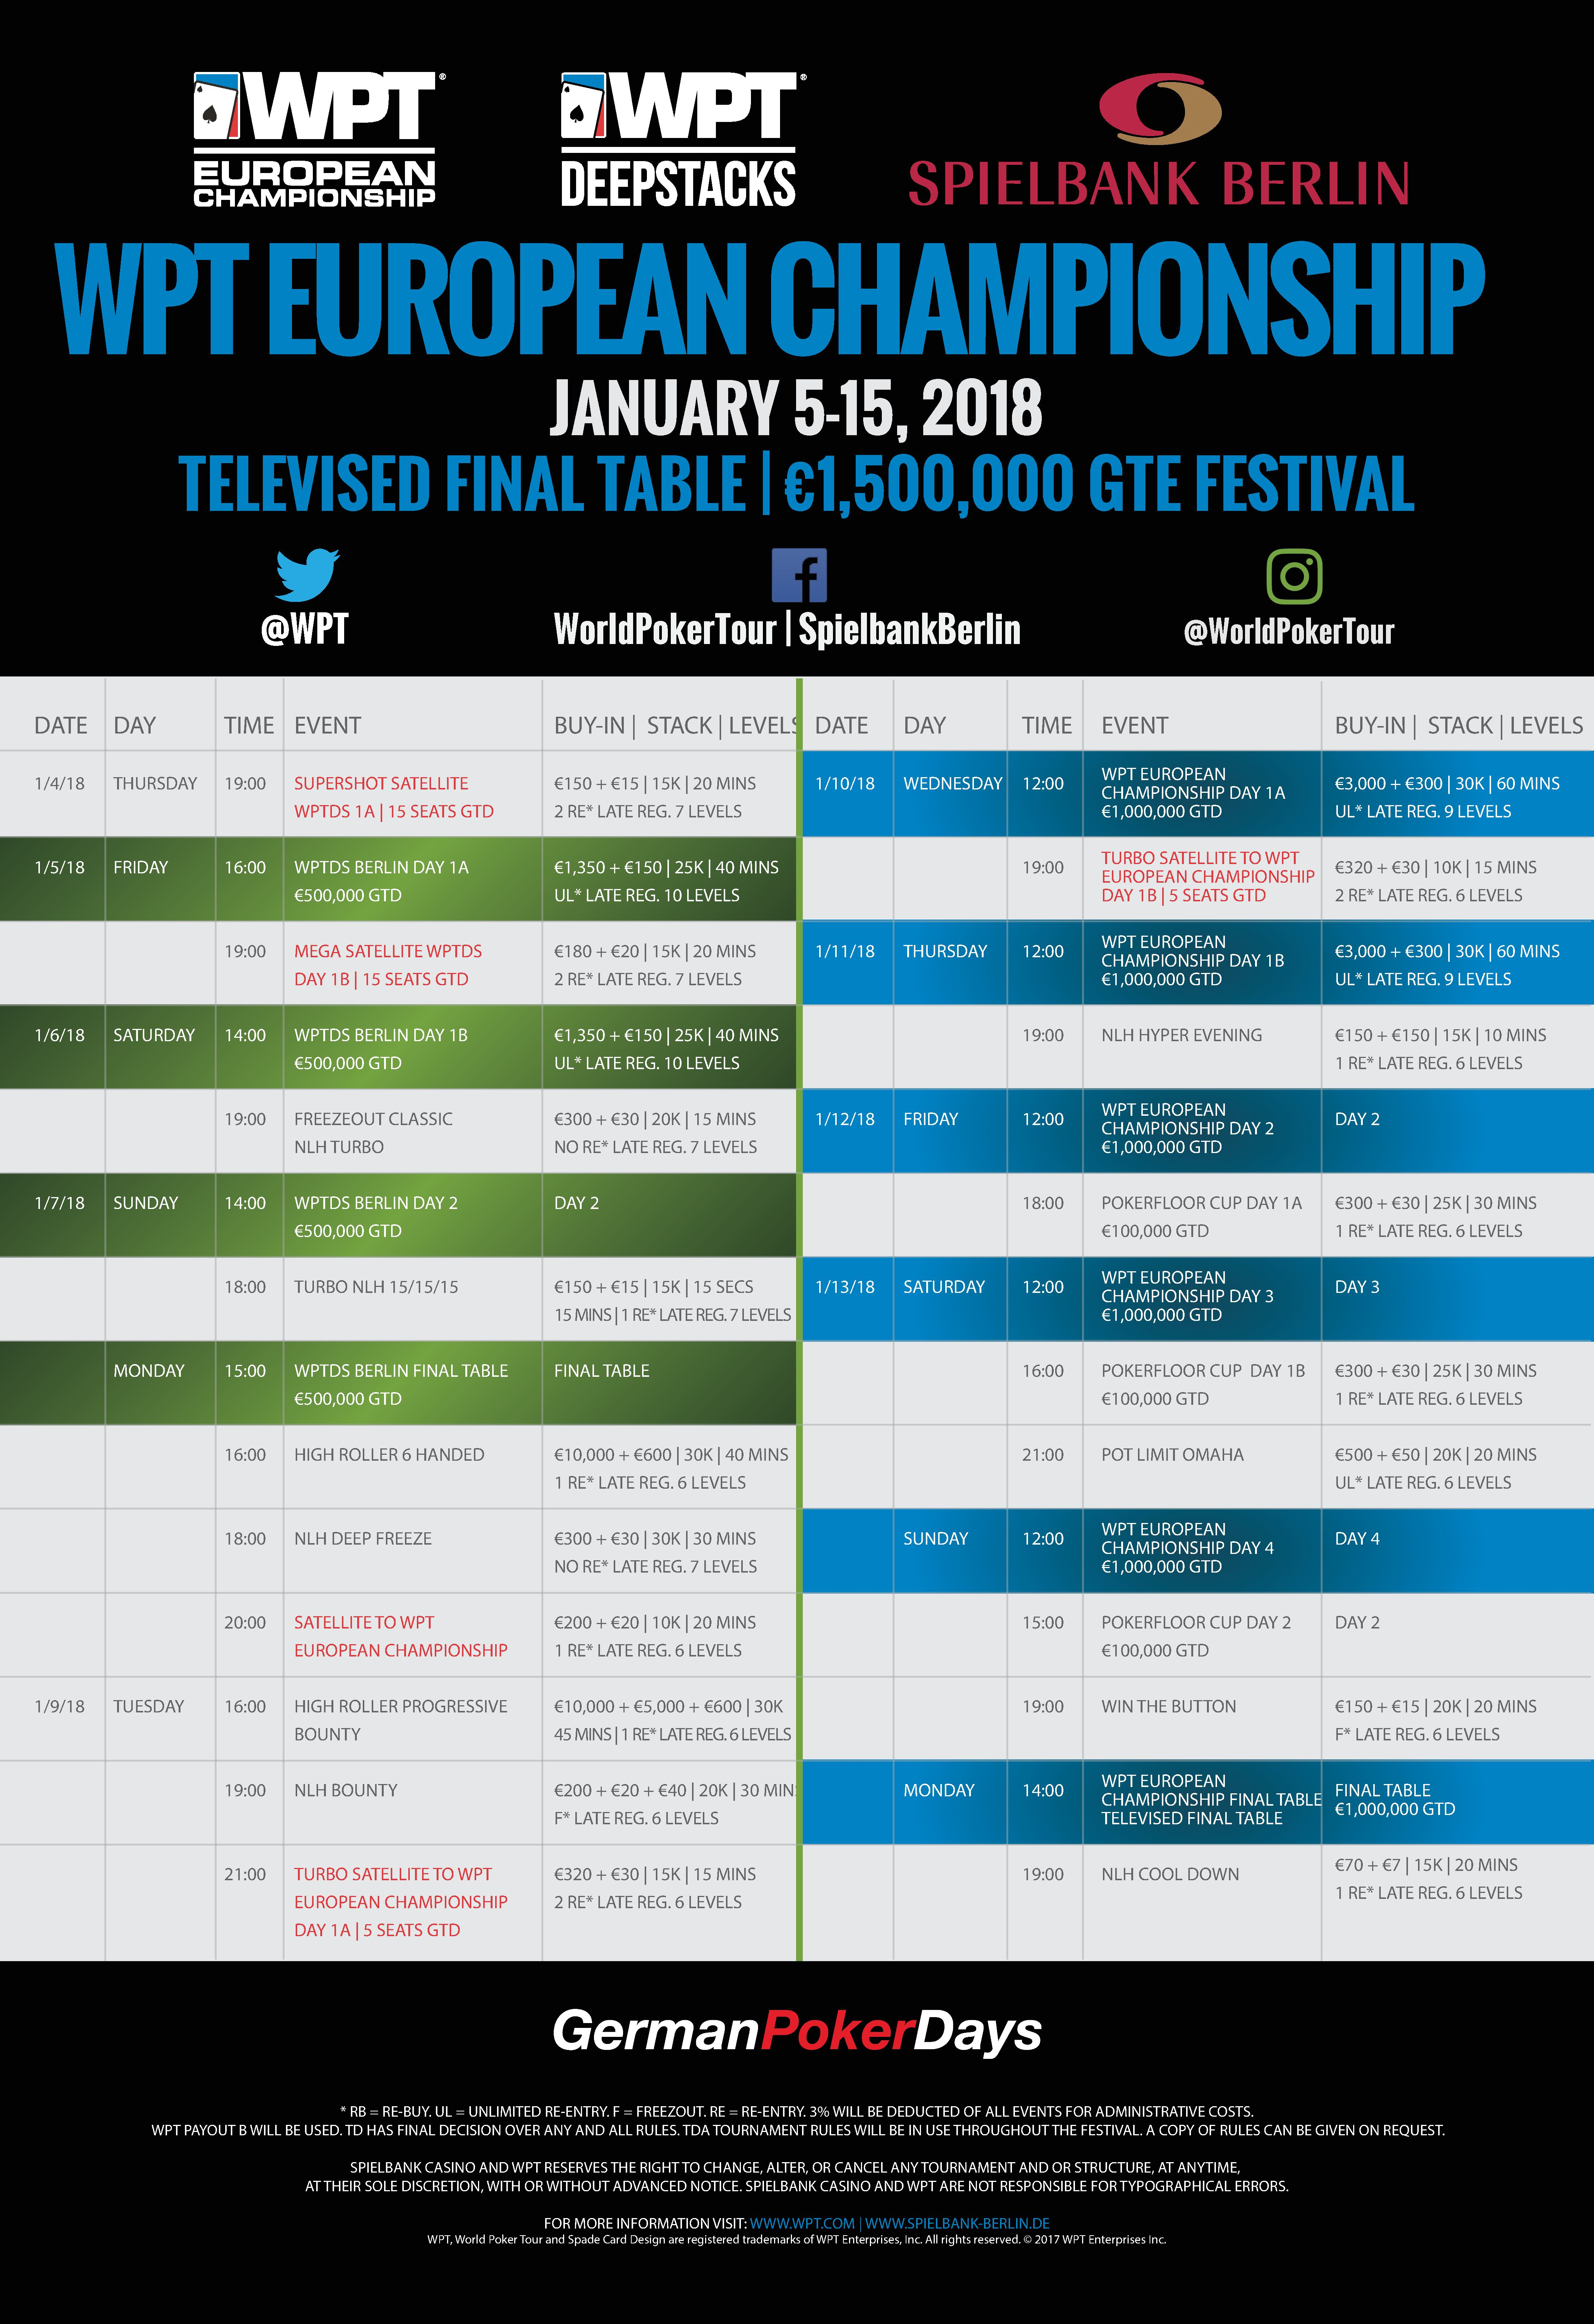 wptds-berlin-schedule-series-white-2017